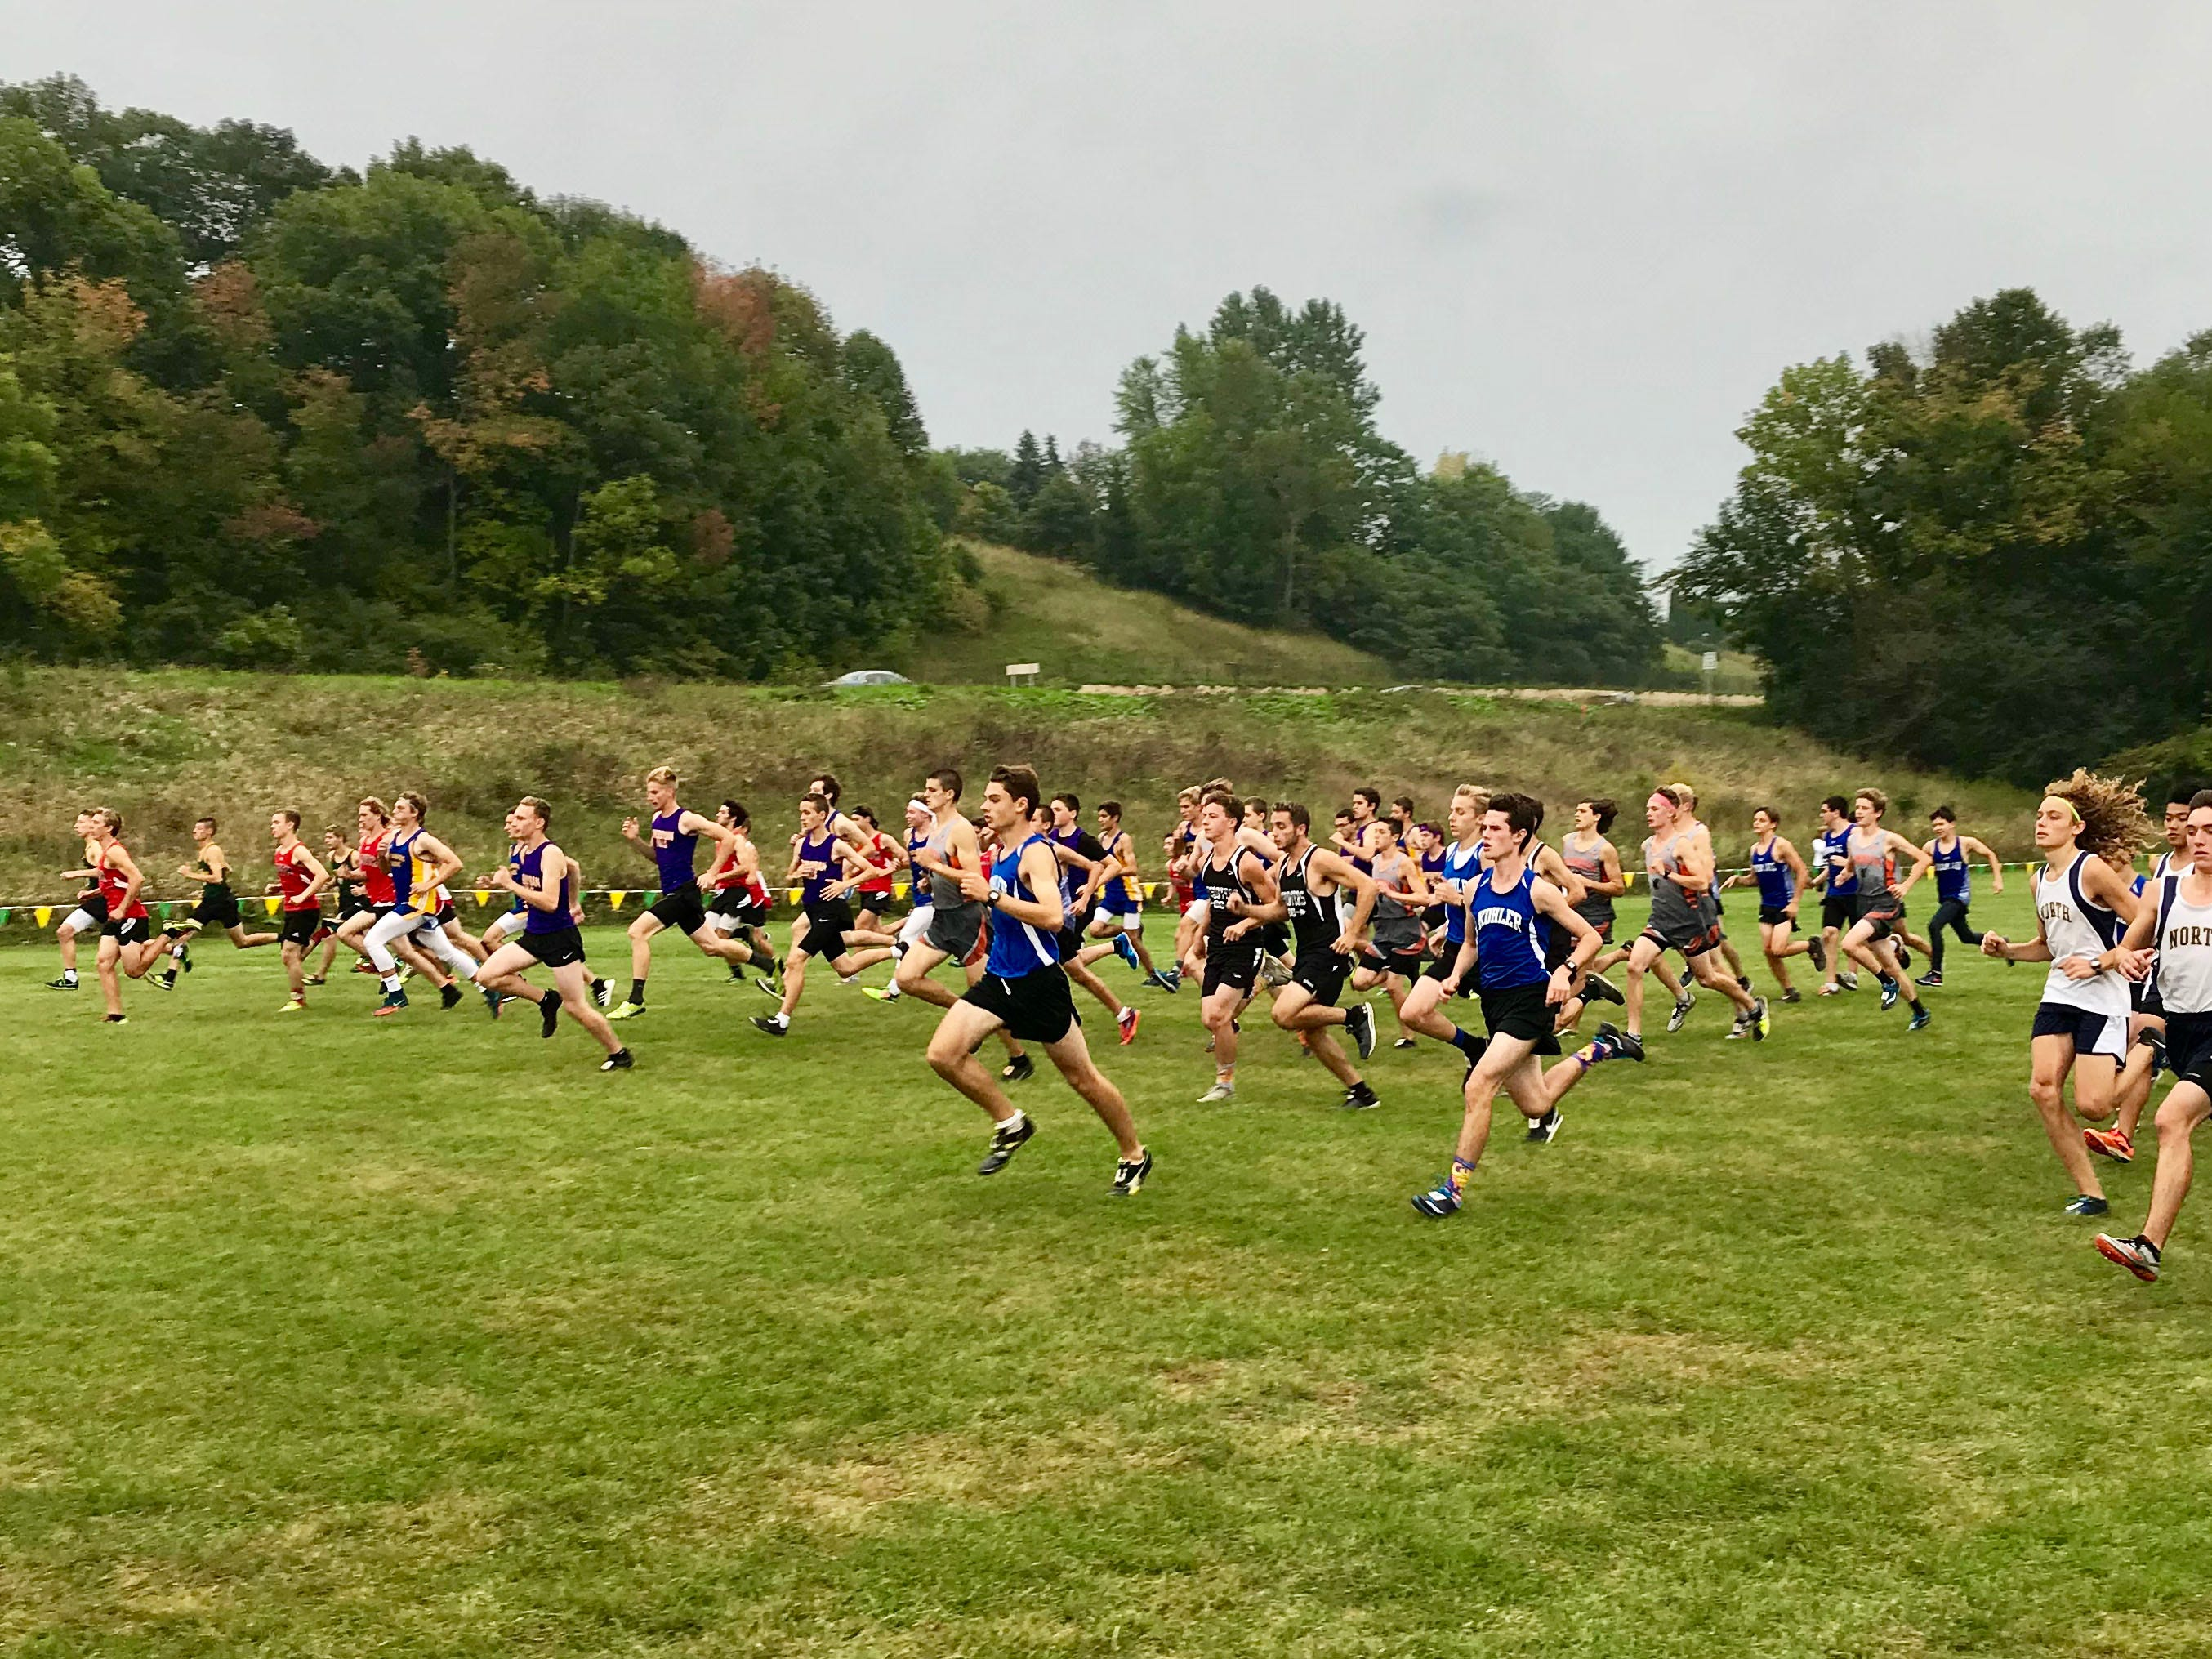 The start of the varsity boys portion of the Sheboygan County Cross Country Invitational, Tuesday, September 25, 2018, in Sheboygan, Wis.